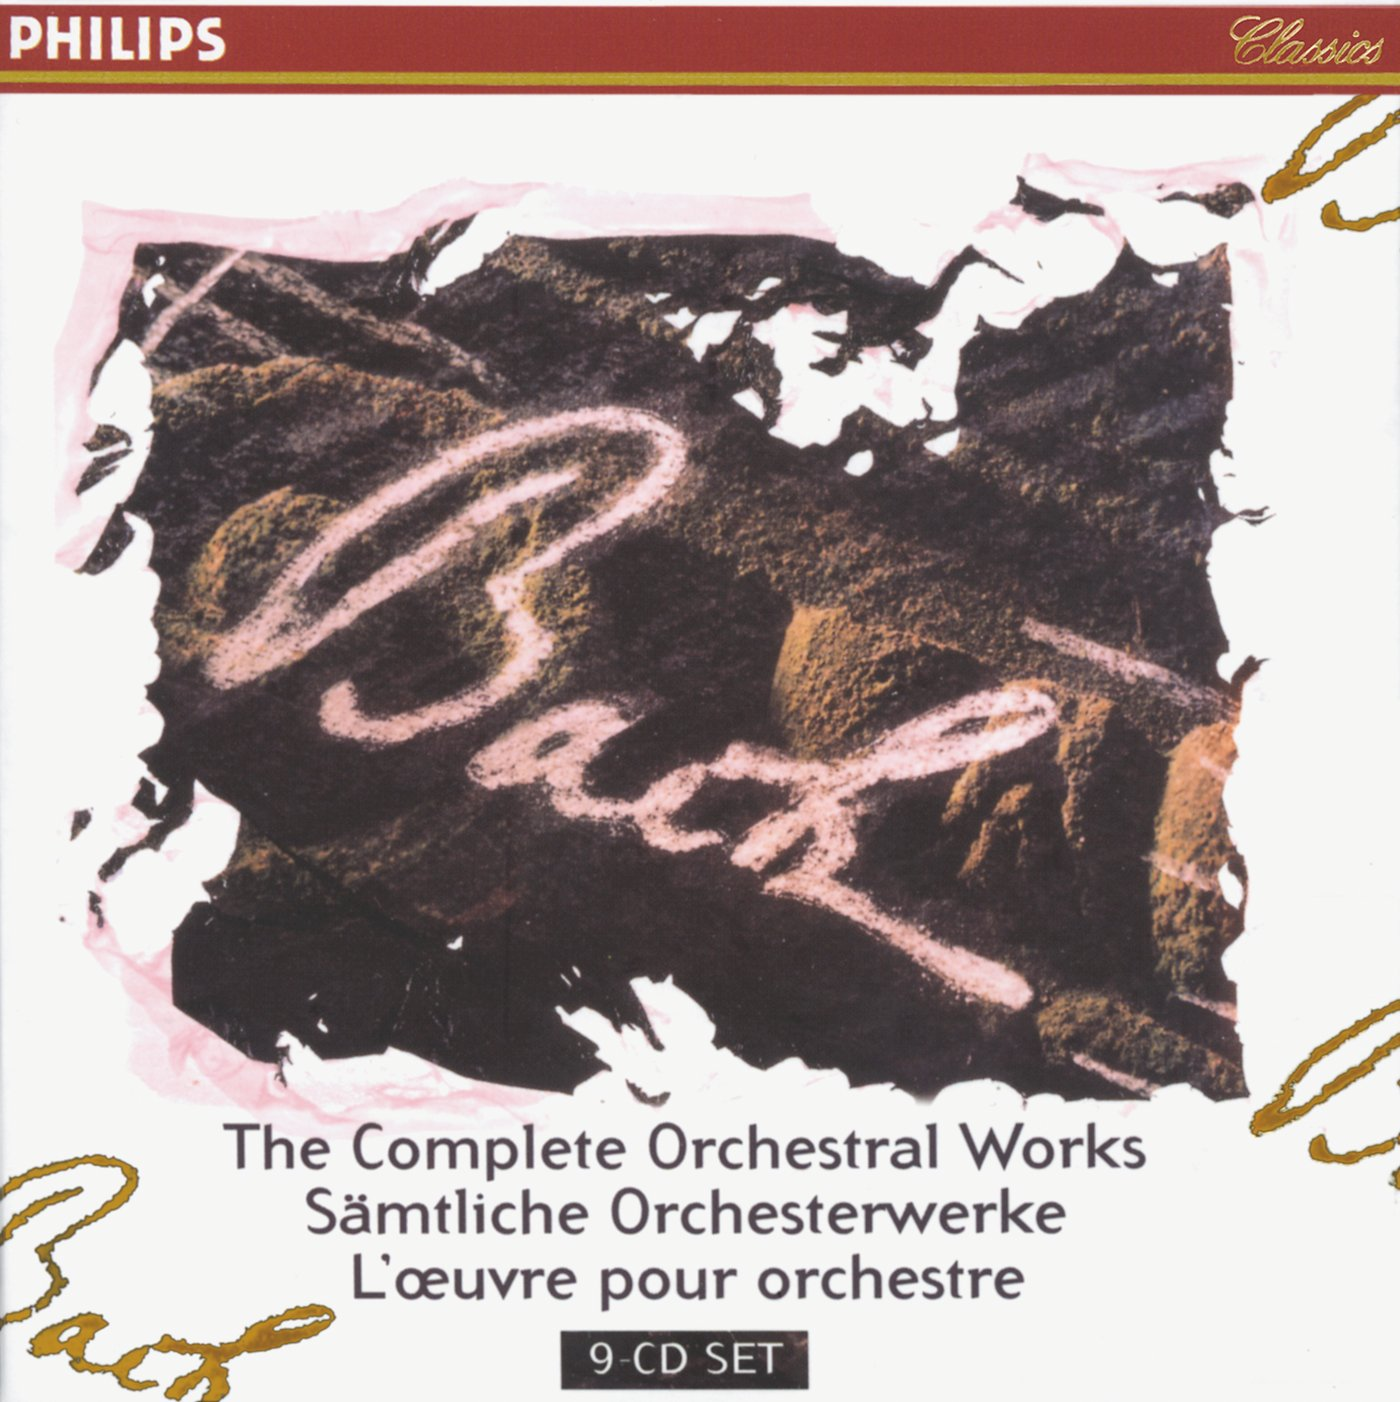 Complete Orchestral Works by Philips